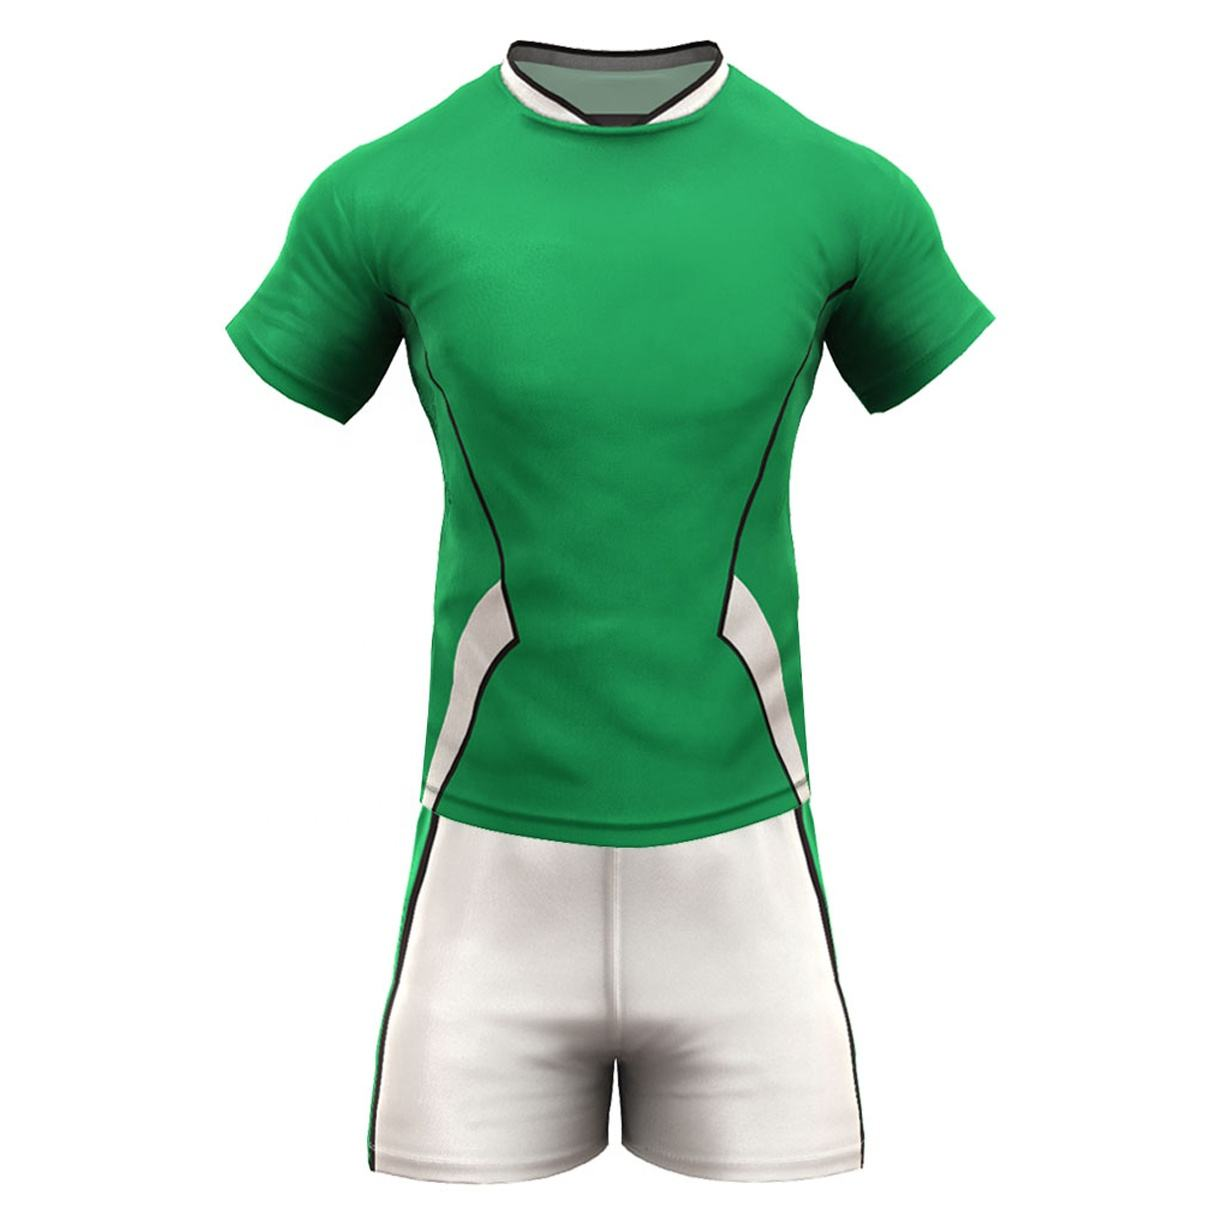 Sublimation Custom Design Kits Rugby Jersey Wear Uniform shirt and shorts in polyester sublimated